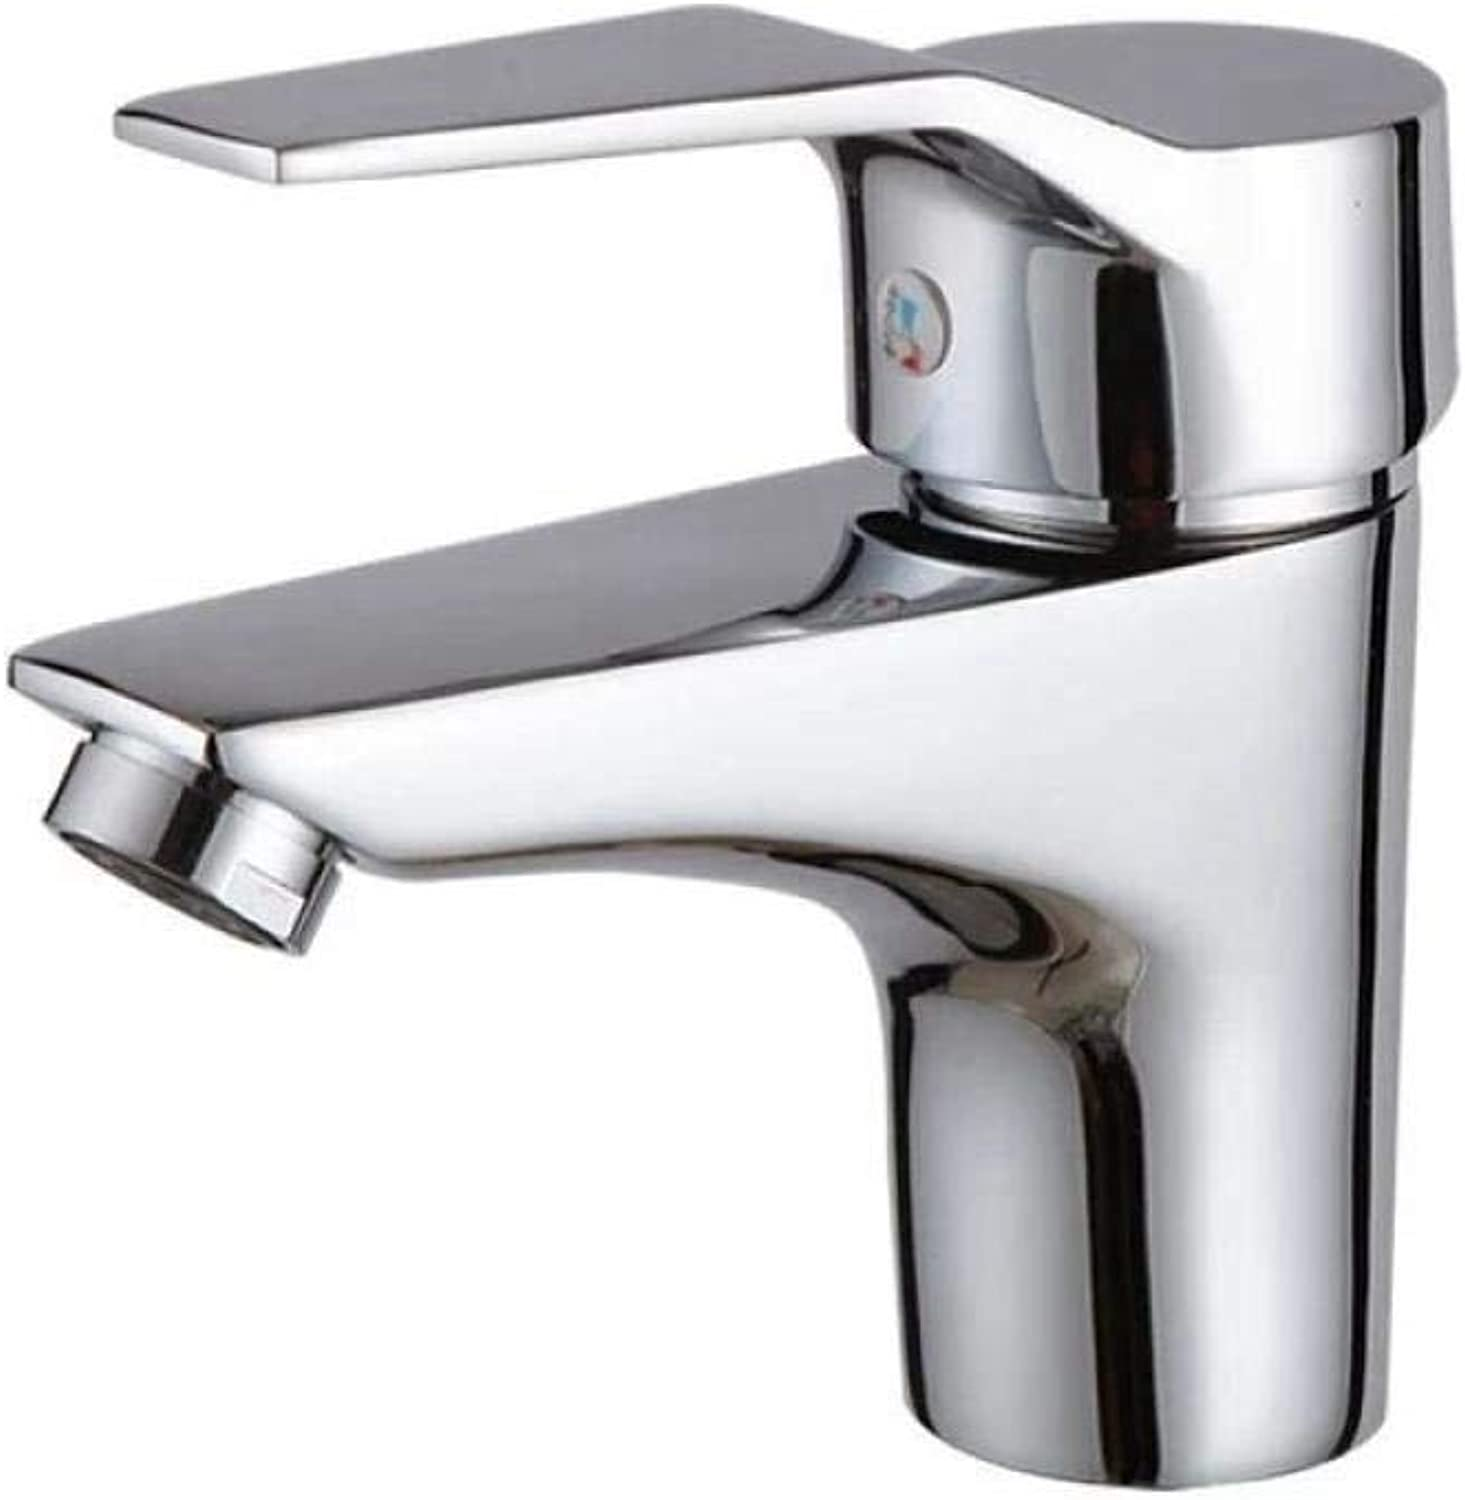 Copper Single Hole Wash Basin Faucet C7697